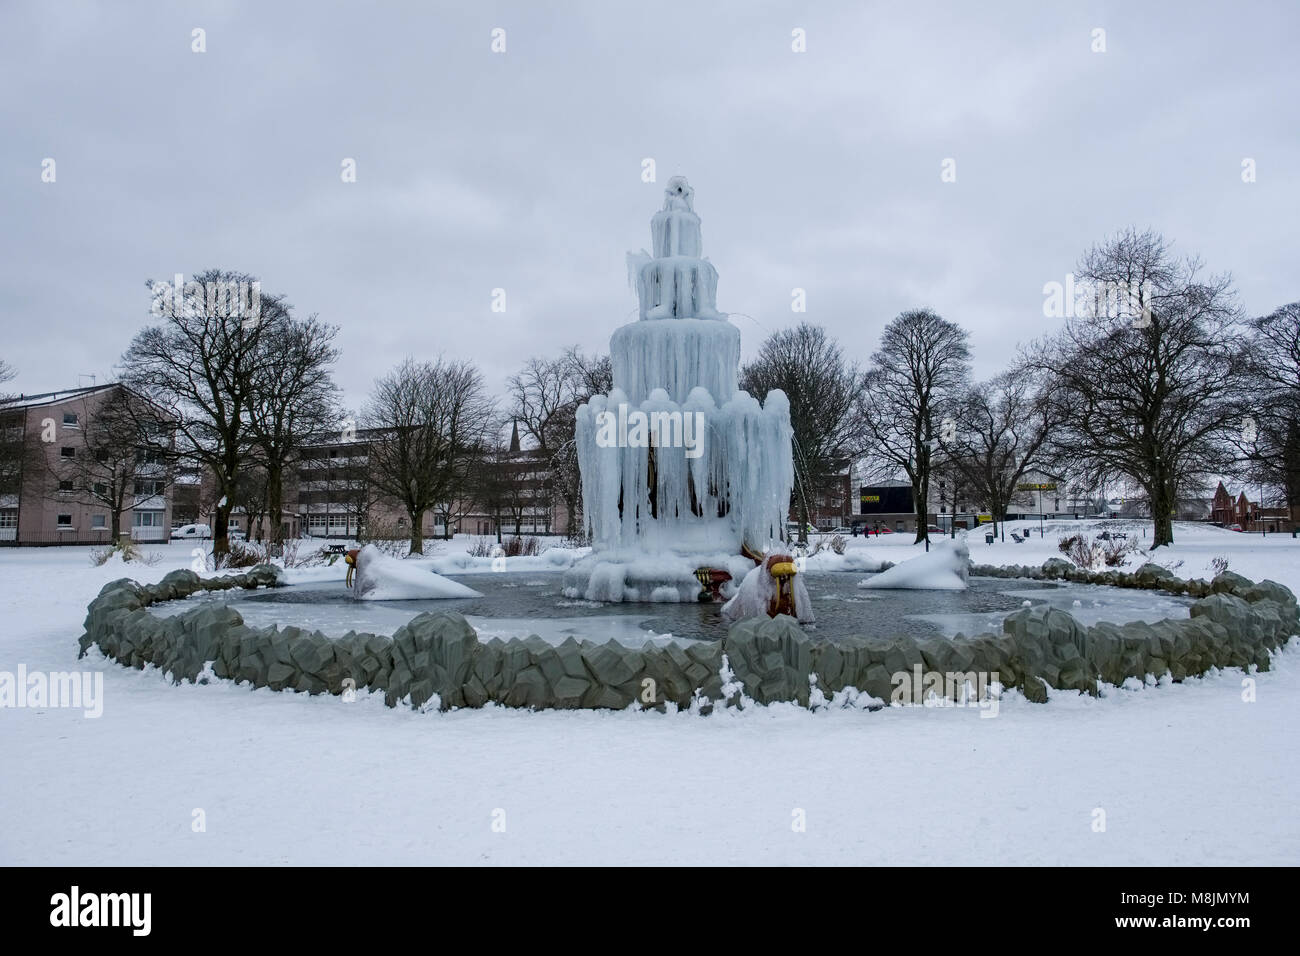 Frozen Fountain Frozen Fountain At Fountain Park Paisley Scotland During Beast